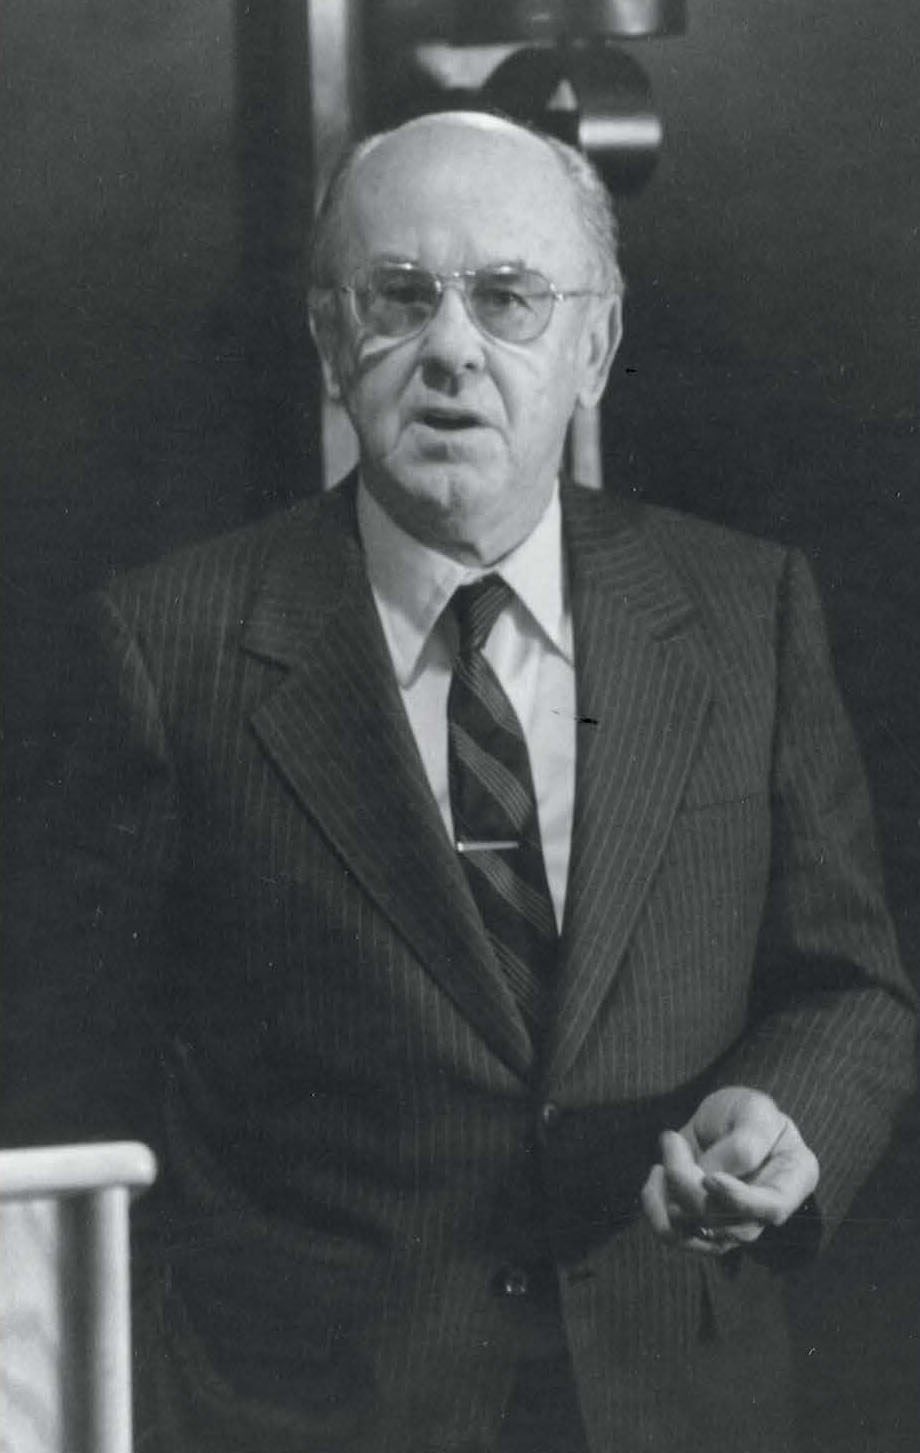 MiTek's History - Black and white photo of Walter Moehlenpah from the 1960s